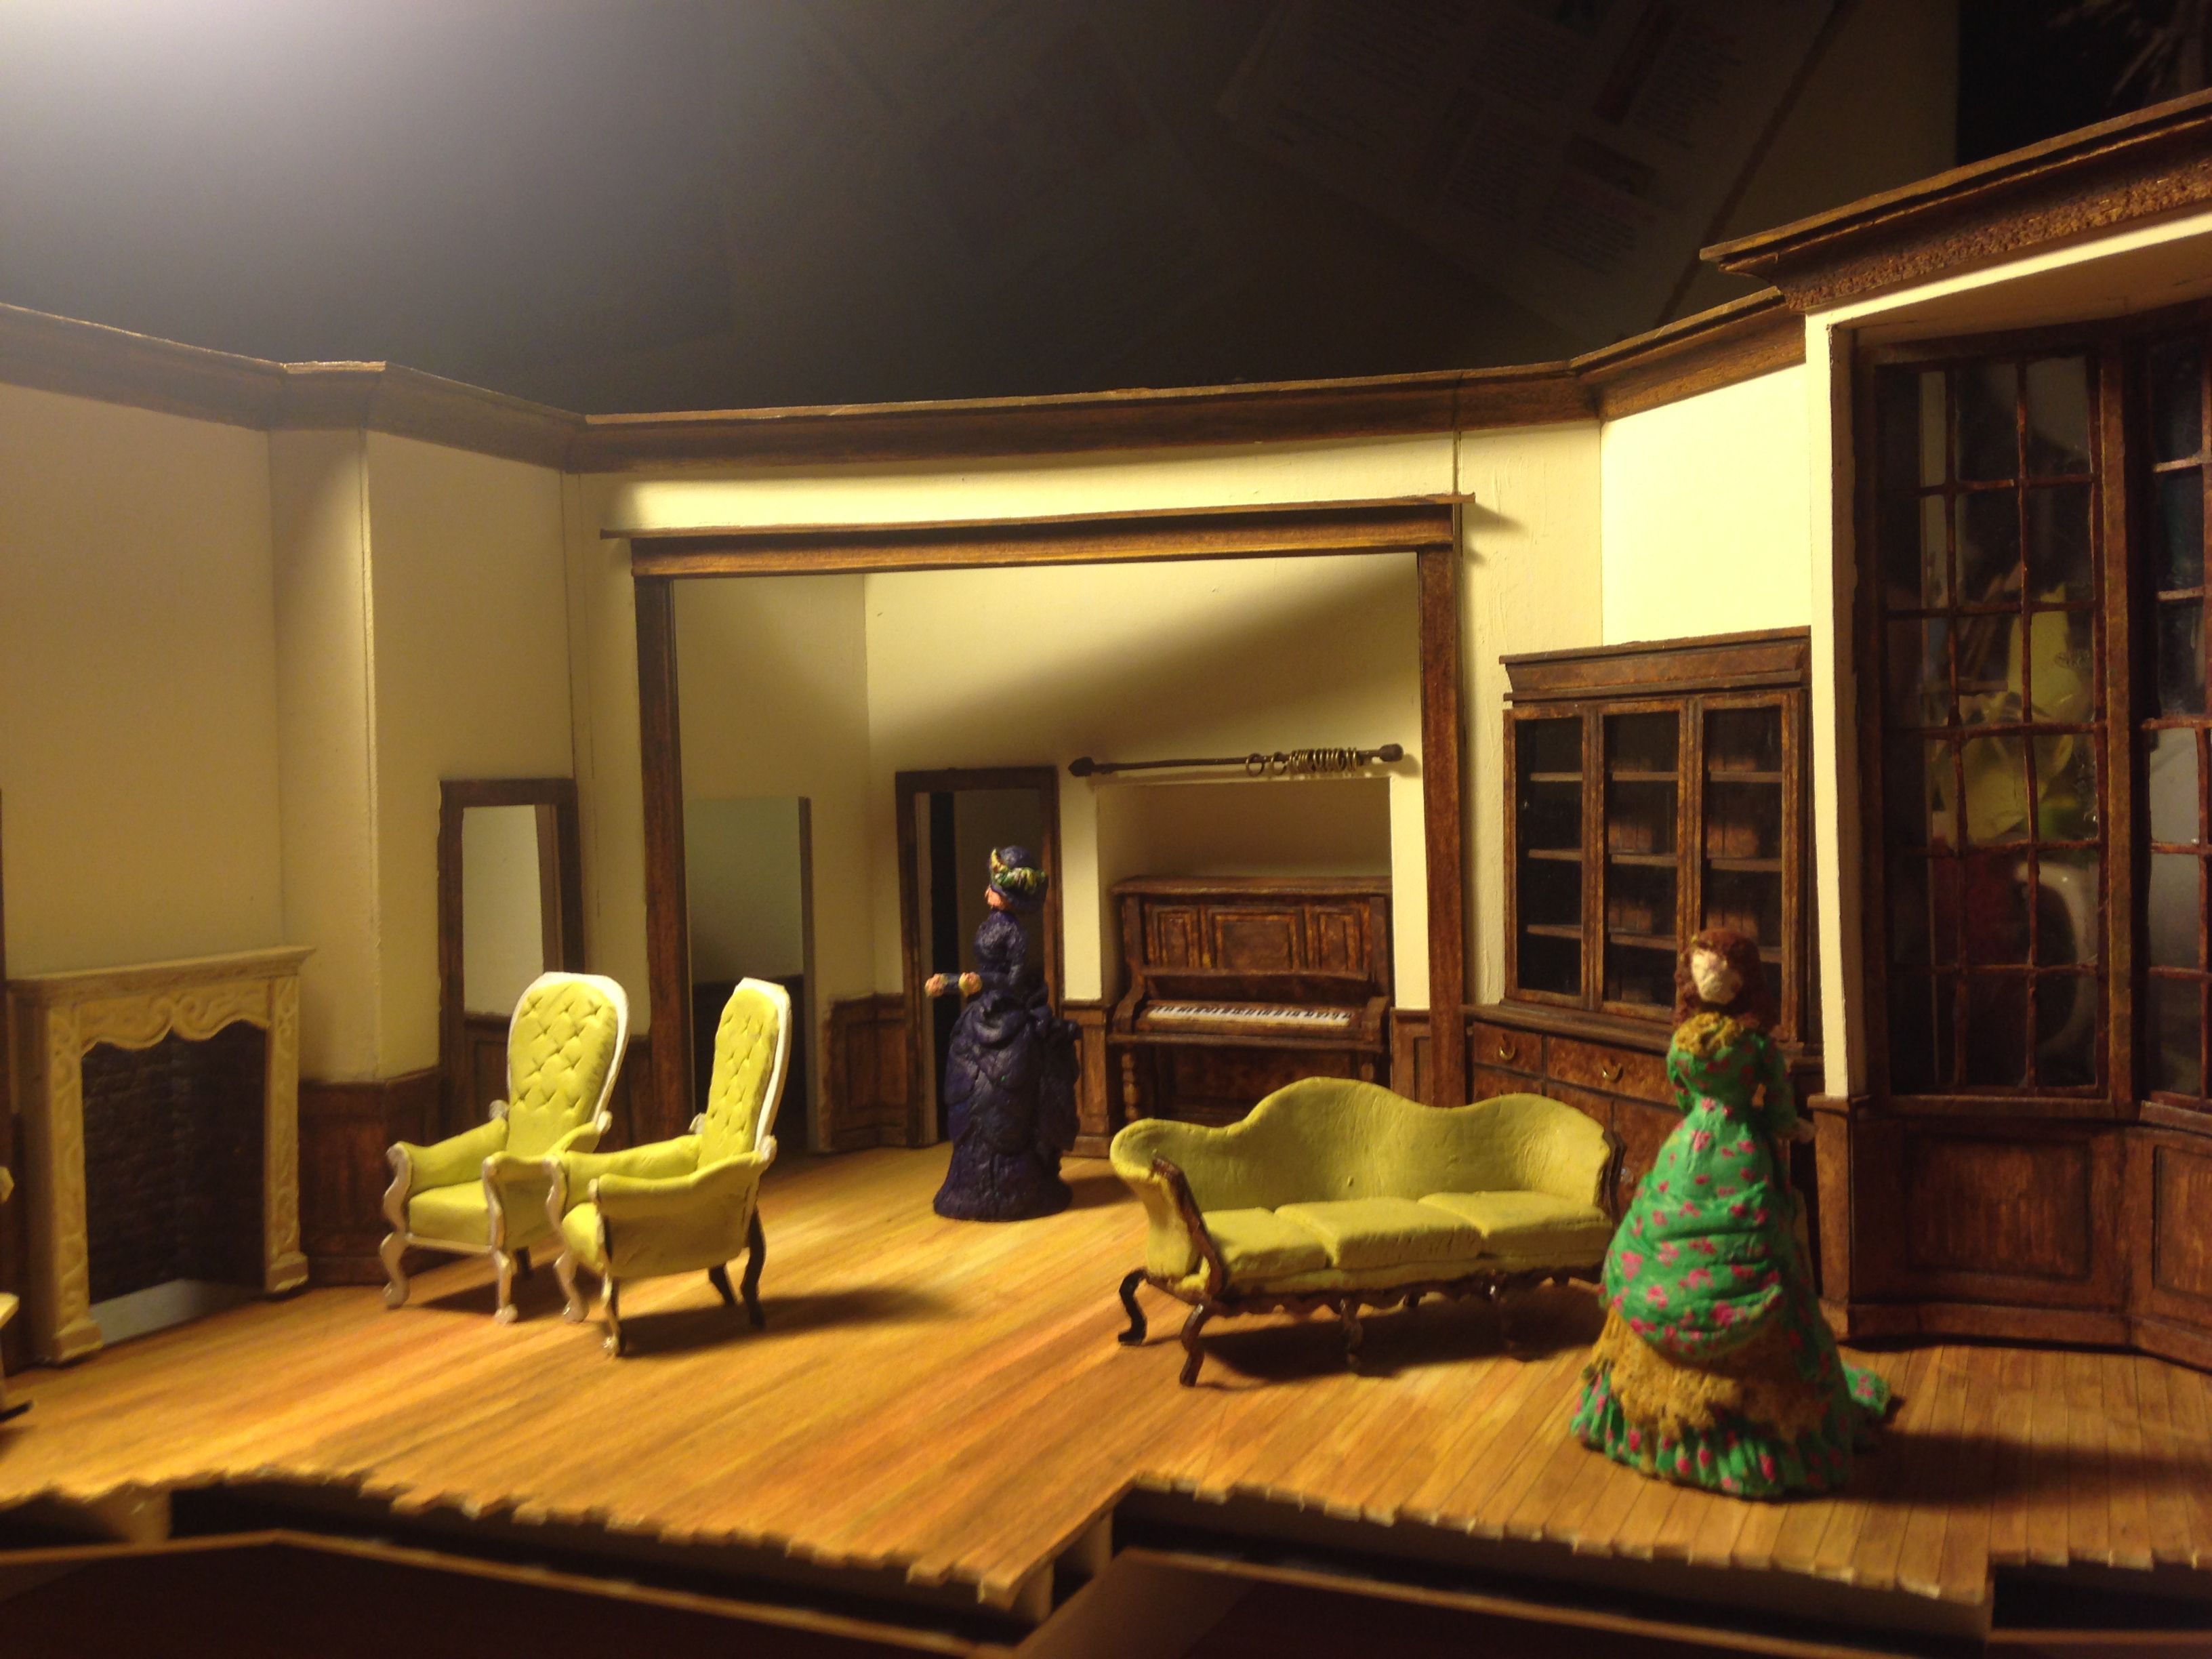 The Process Model Bof For Henrik Ibsen S A Doll S House 1 25